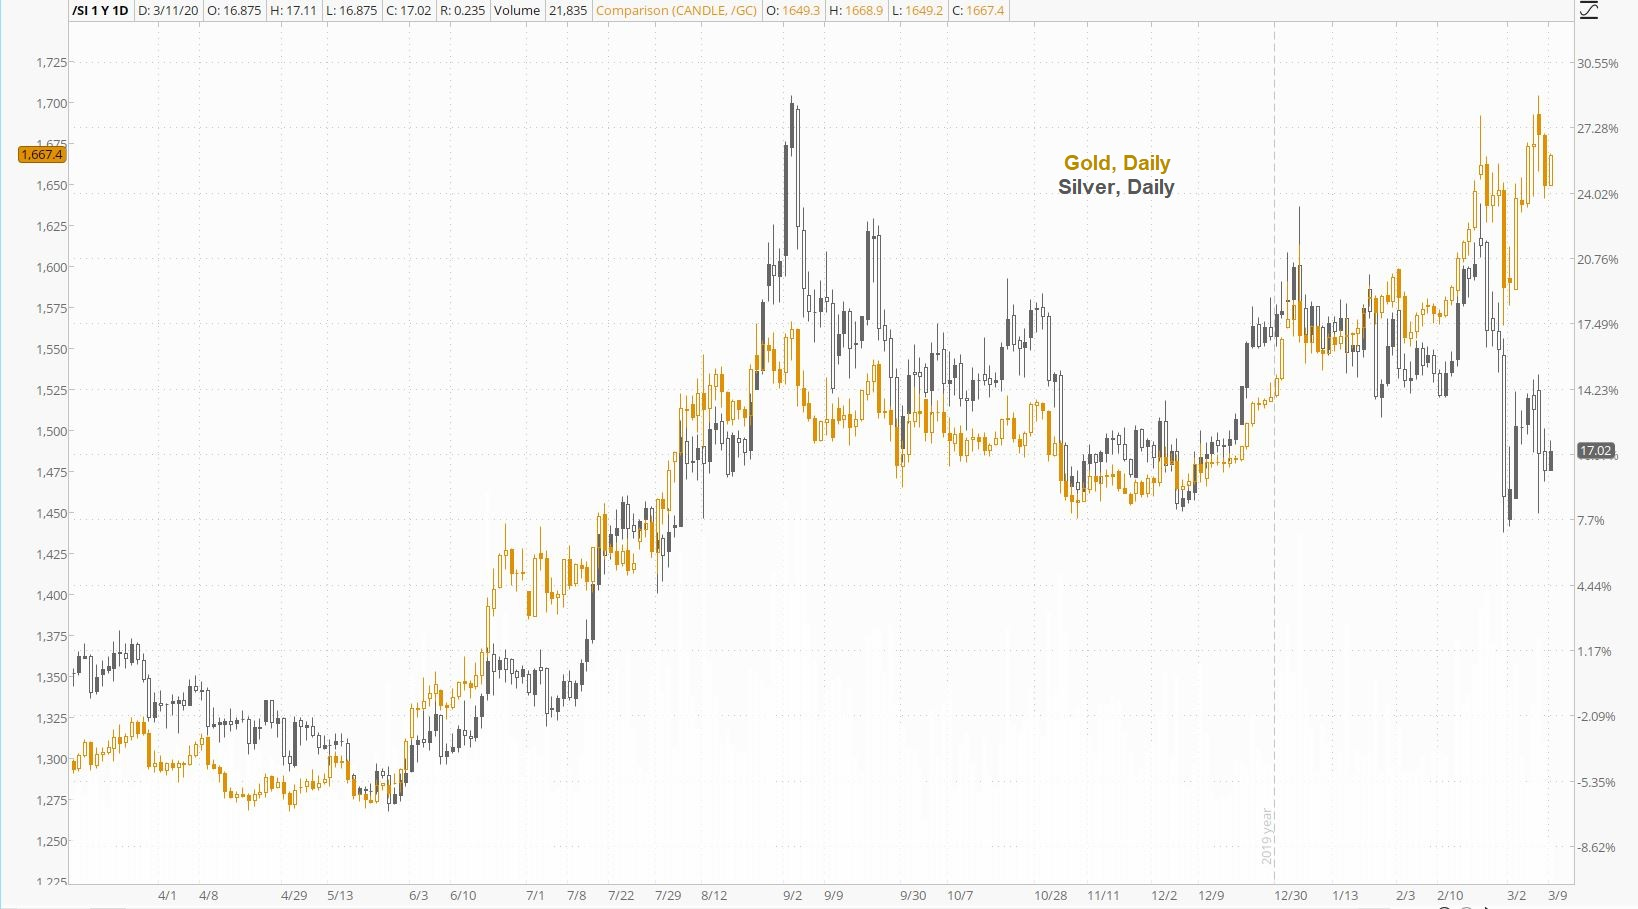 Gold Silver Daily Ratio